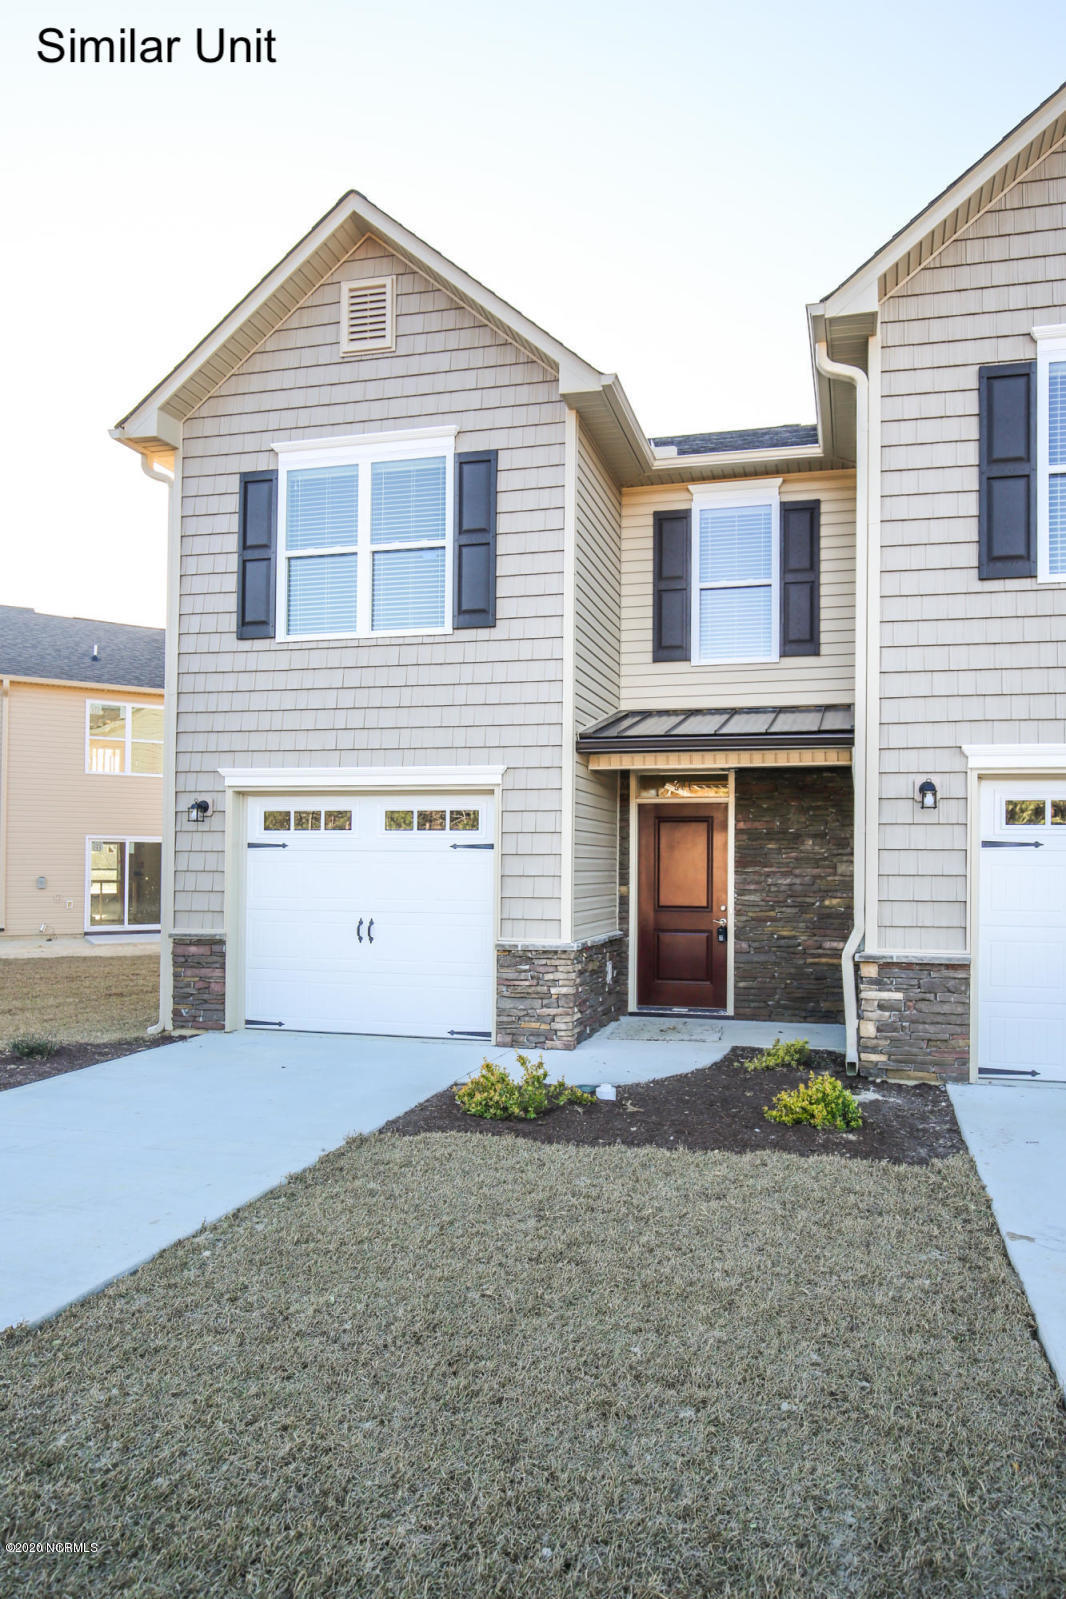 237 Boyington Place Road, Midway Park, North Carolina 28544, 2 Bedrooms Bedrooms, ,2 BathroomsBathrooms,Residential,For Sale,Boyington Place,100203980